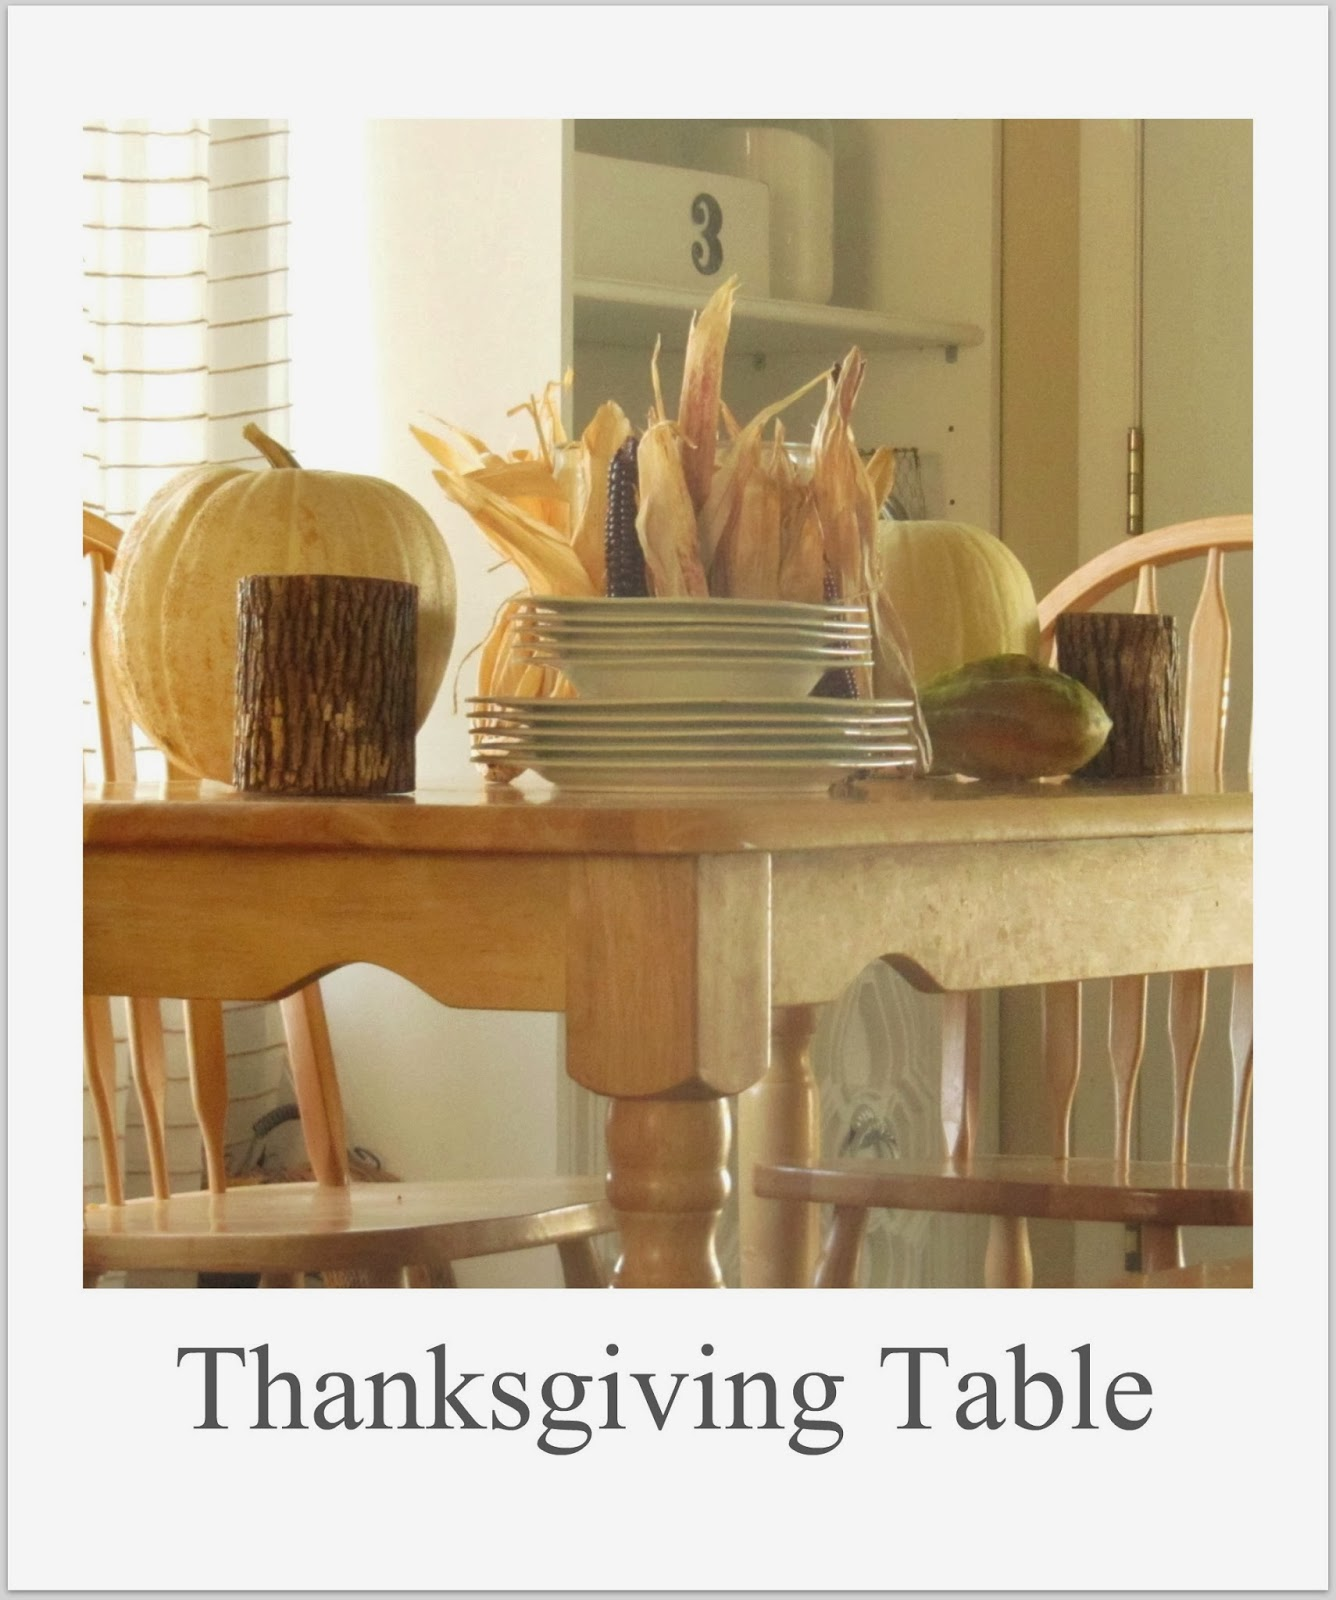 http://thewickerhouse.blogspot.com/2011/11/my-thanksgiving-table.html